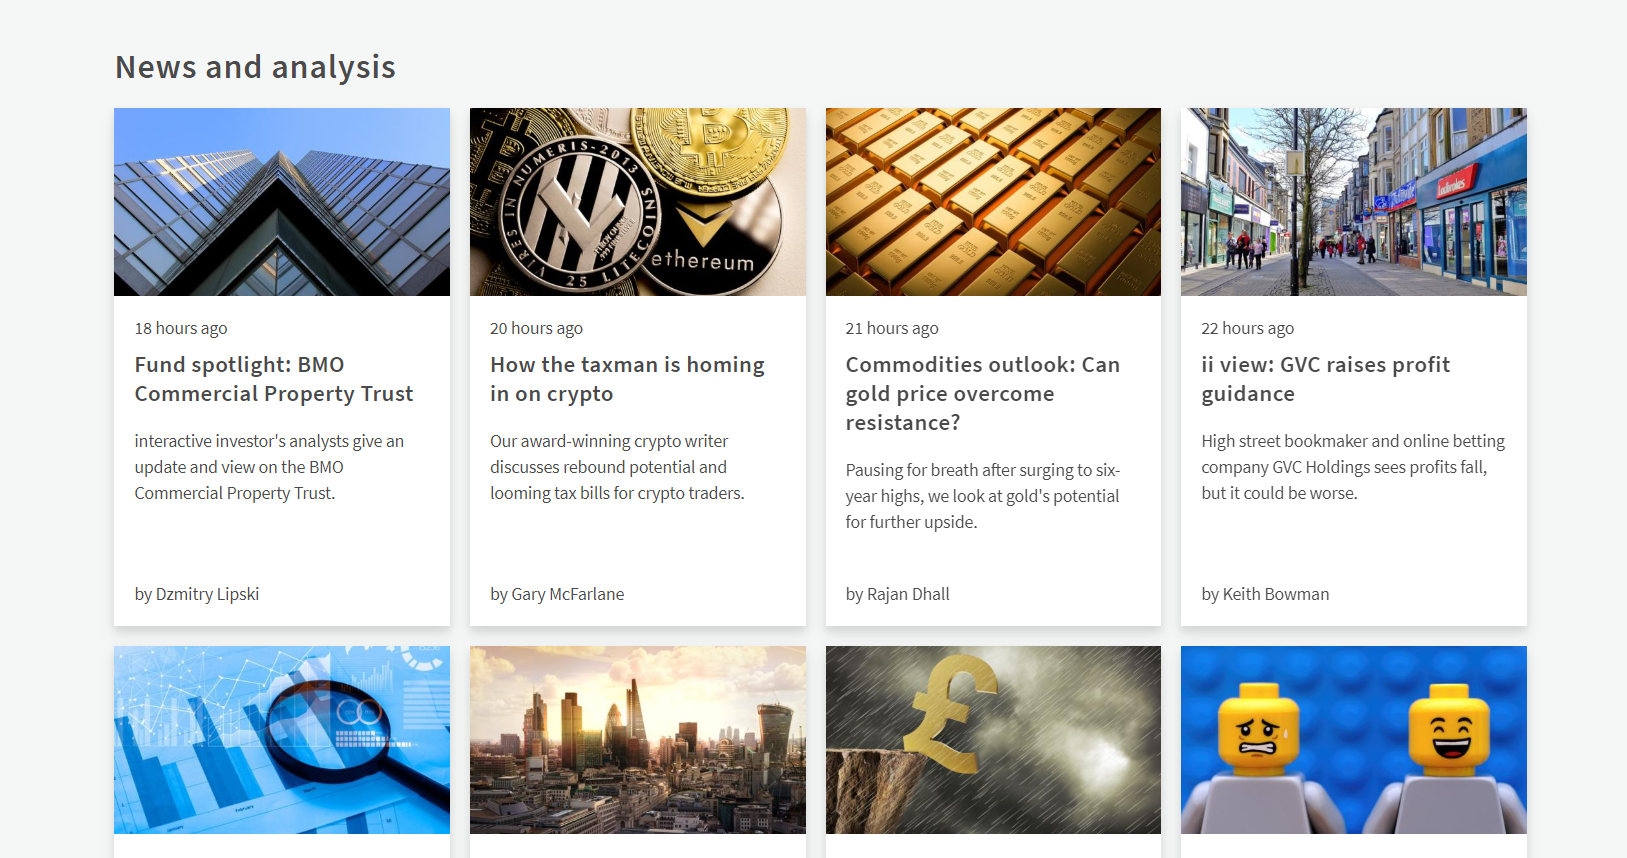 Try the News and analysis of interactive investors!